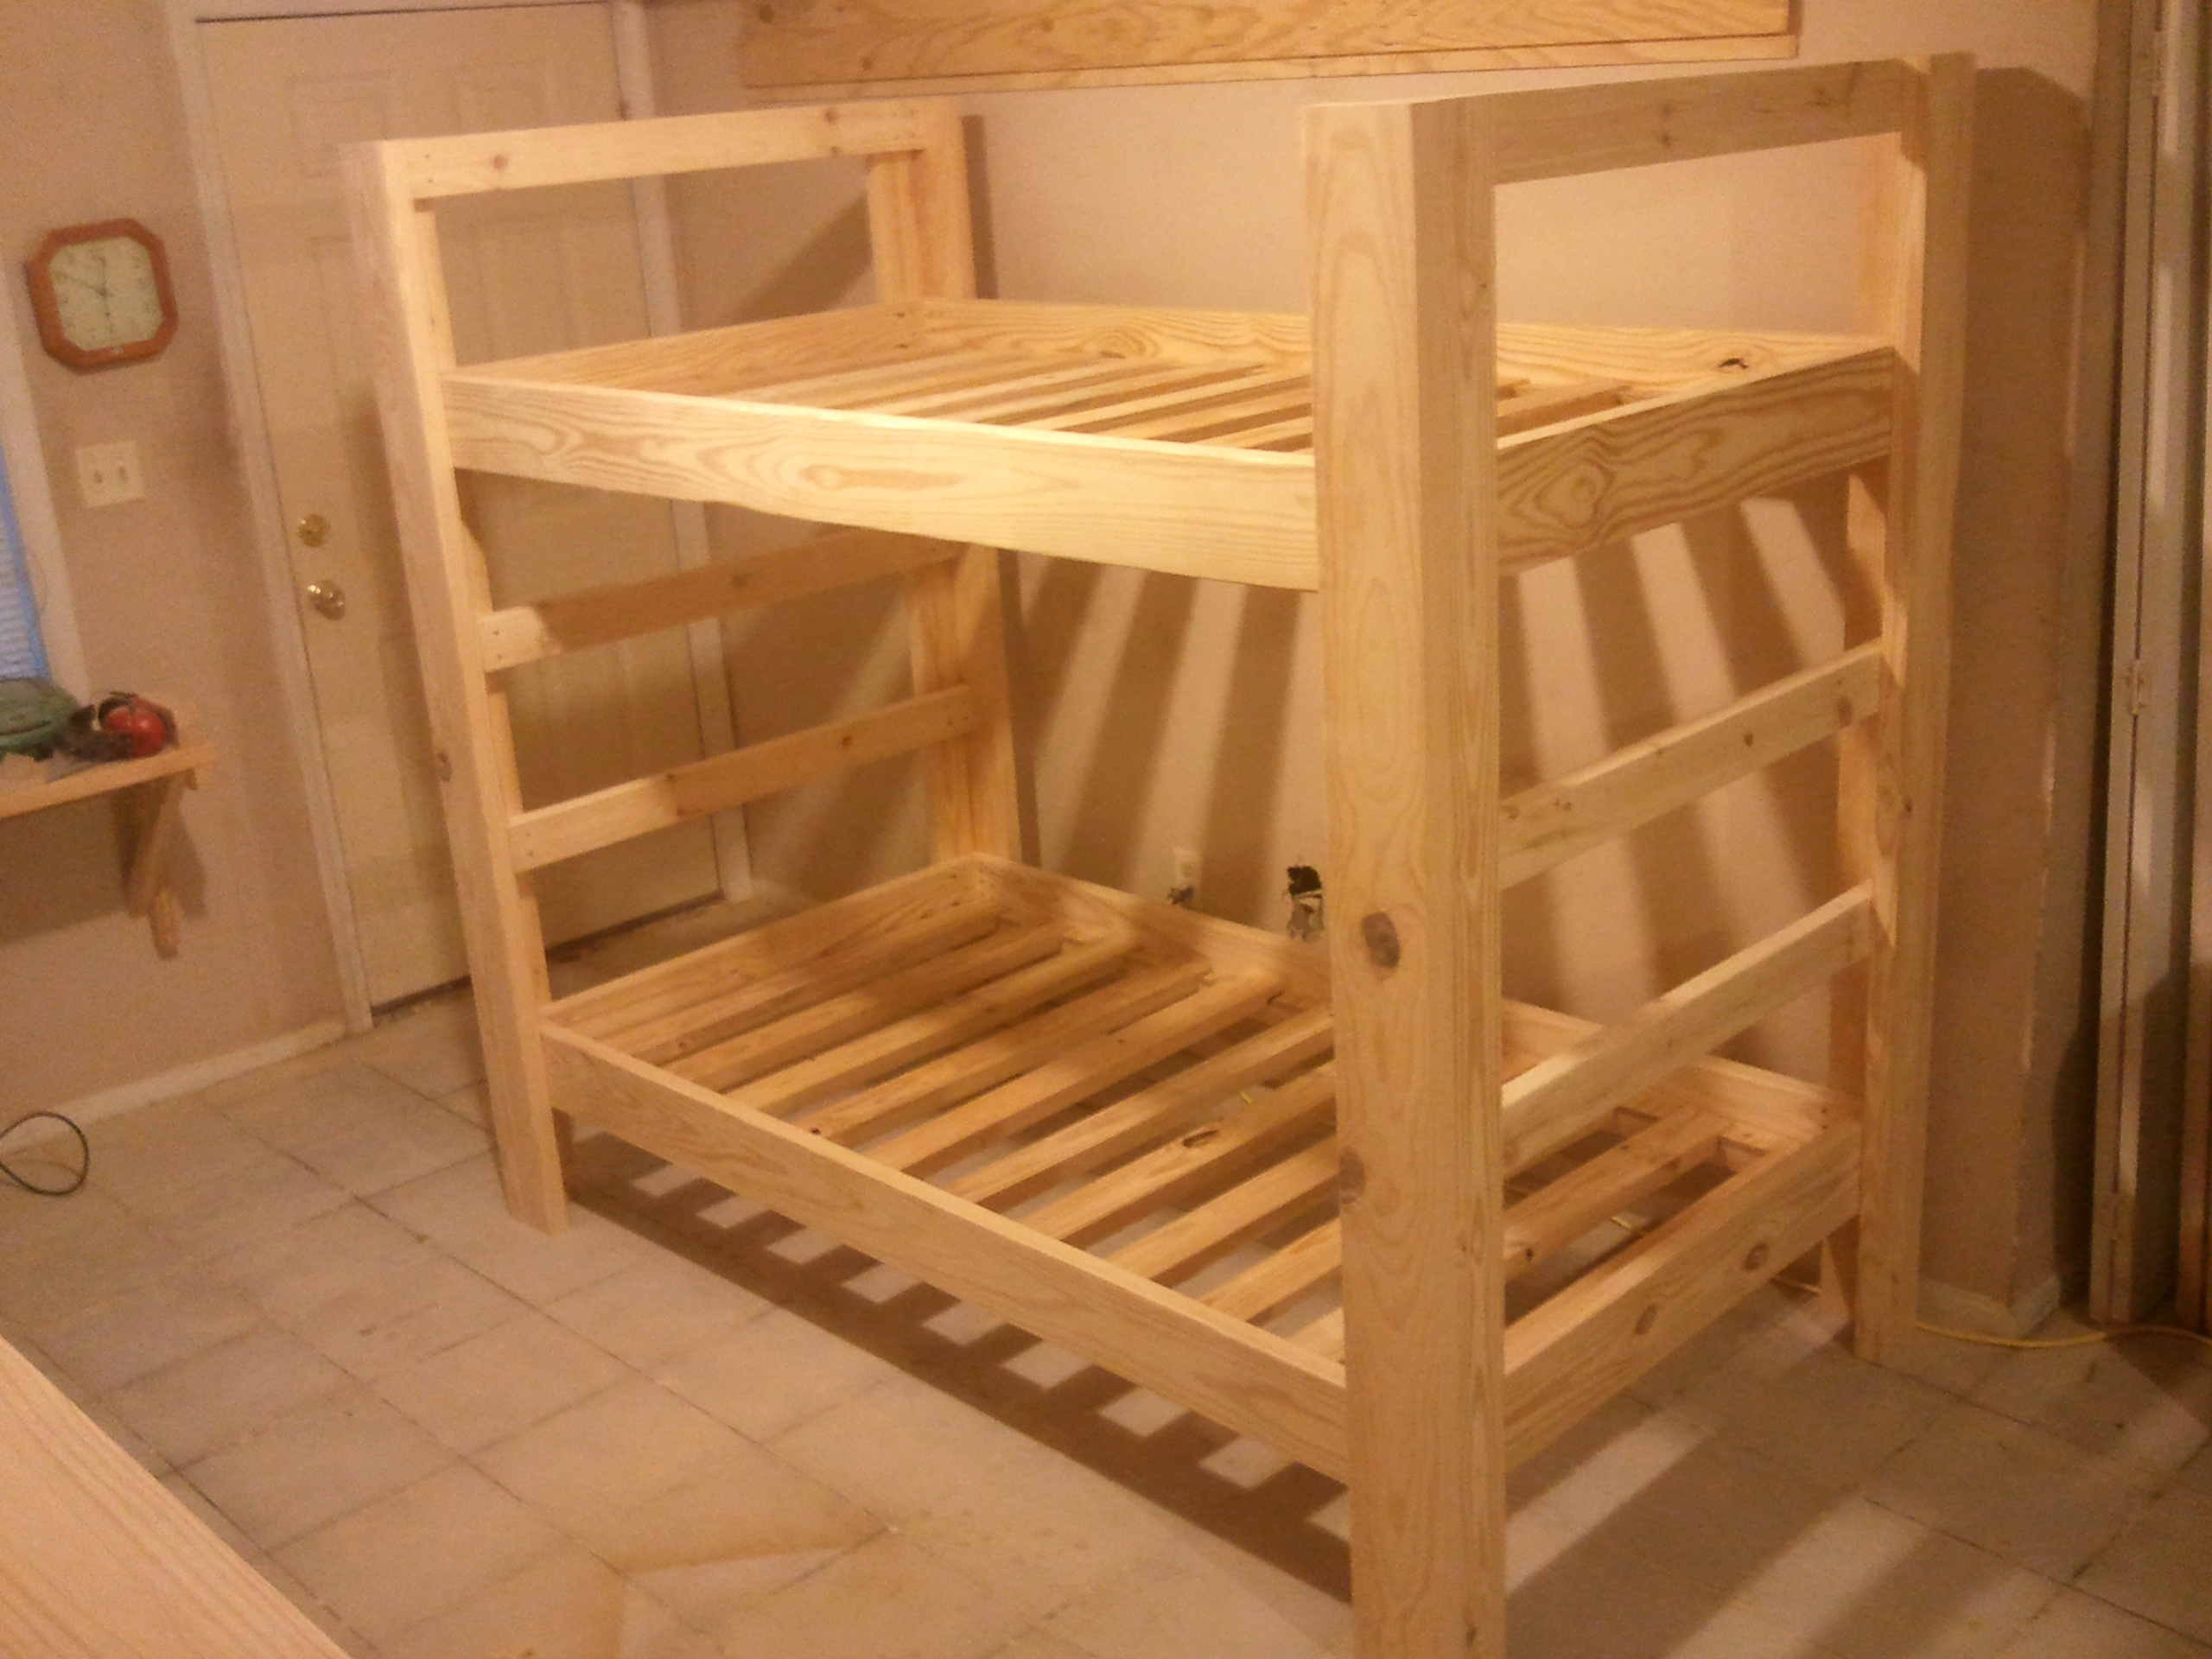 How To Make Bunk Bed Slats